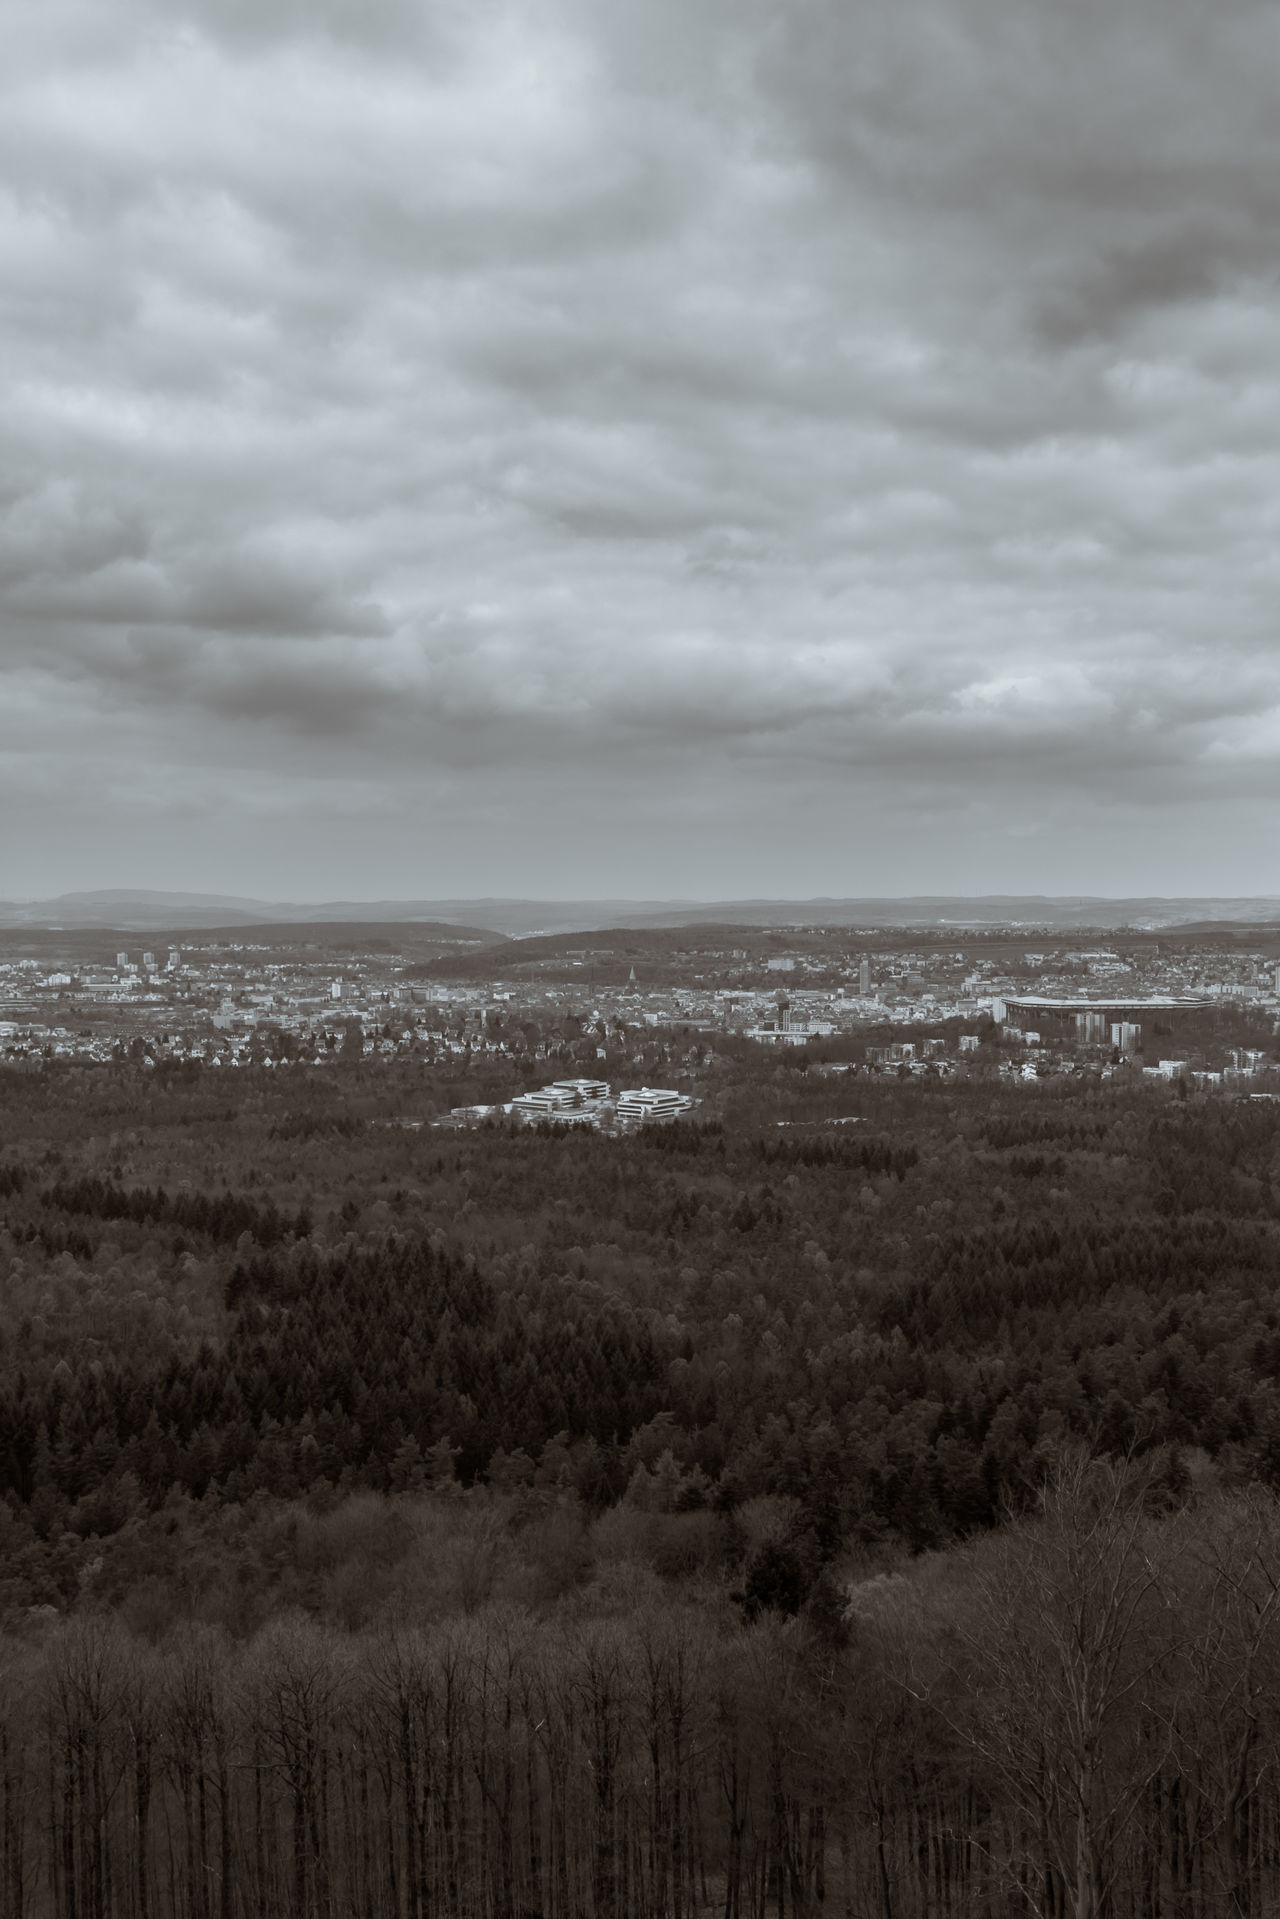 Blackandwhite Blackandwhite Photography City Cityscapes Cloud - Sky Clouds Day Forest K-Town Kaiserslautern Landscape No People Outdoors Scenics Sky Toned Black And White